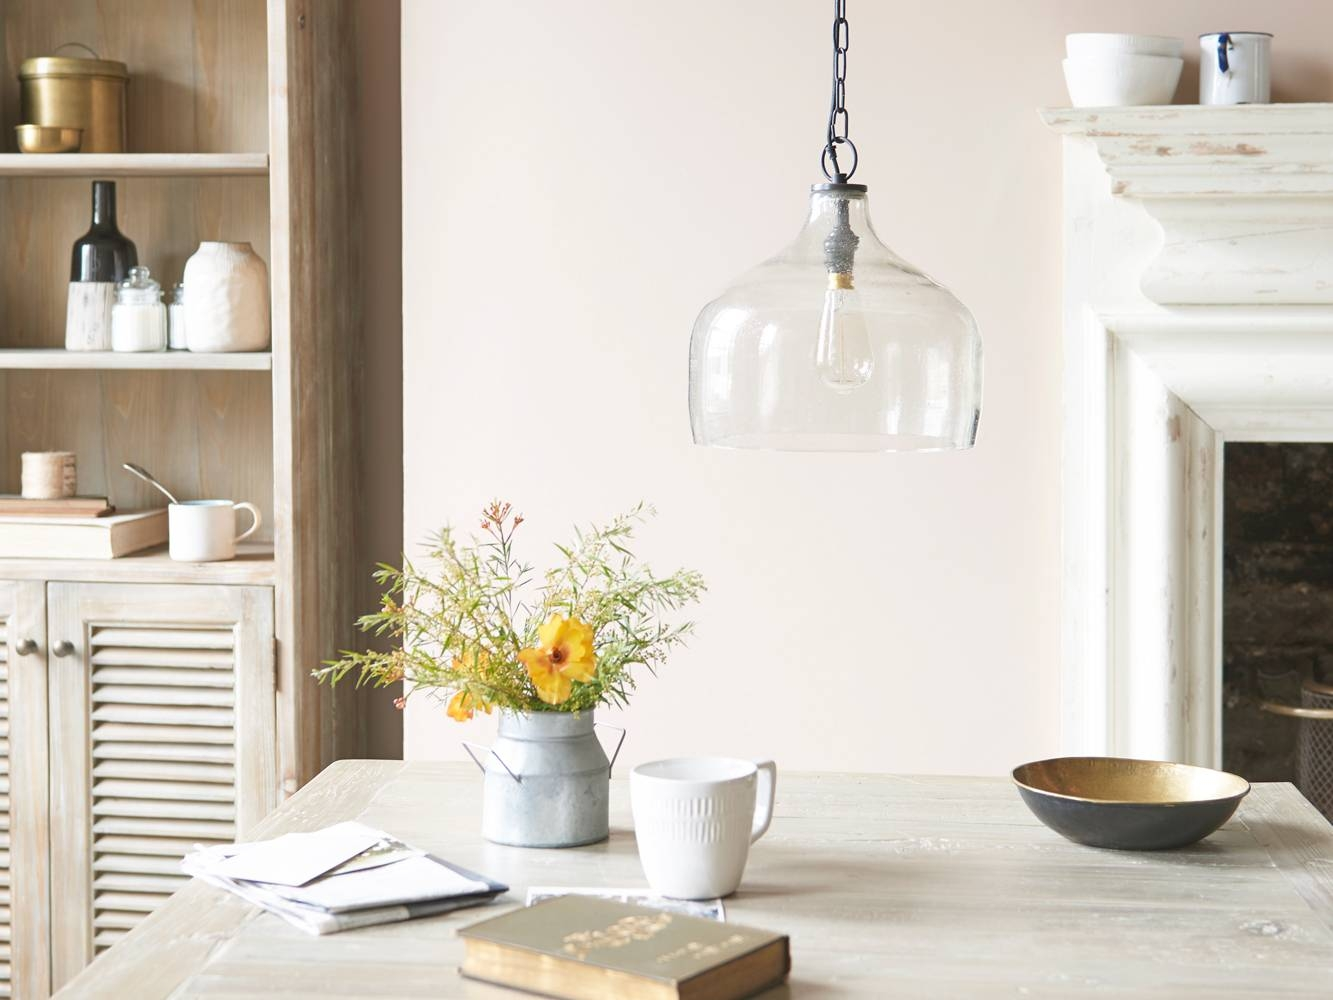 Cowbell Medium Glass Pendant Bell Shaped Light Lamp Loaf Whimsical Pertaining To Nursery Pendant Lights (View 11 of 15)